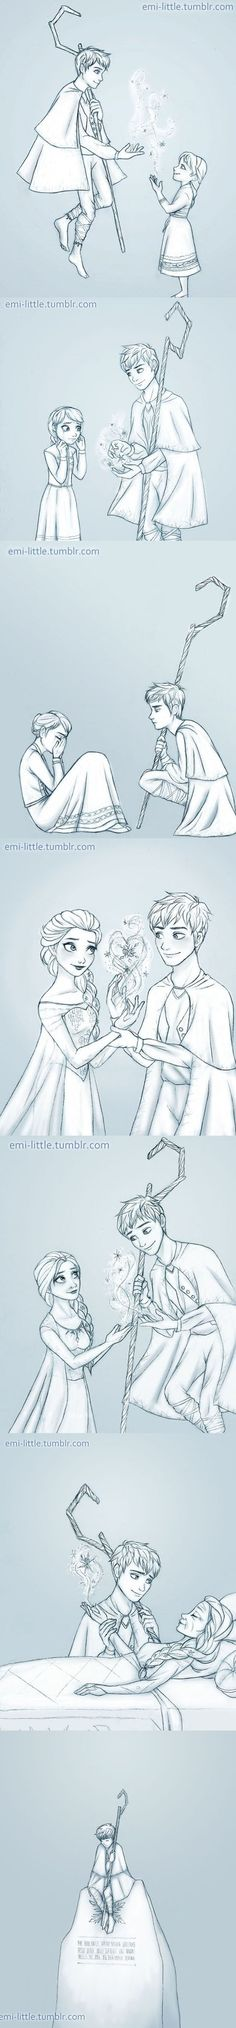 Jack Frost an Elsa Eternity